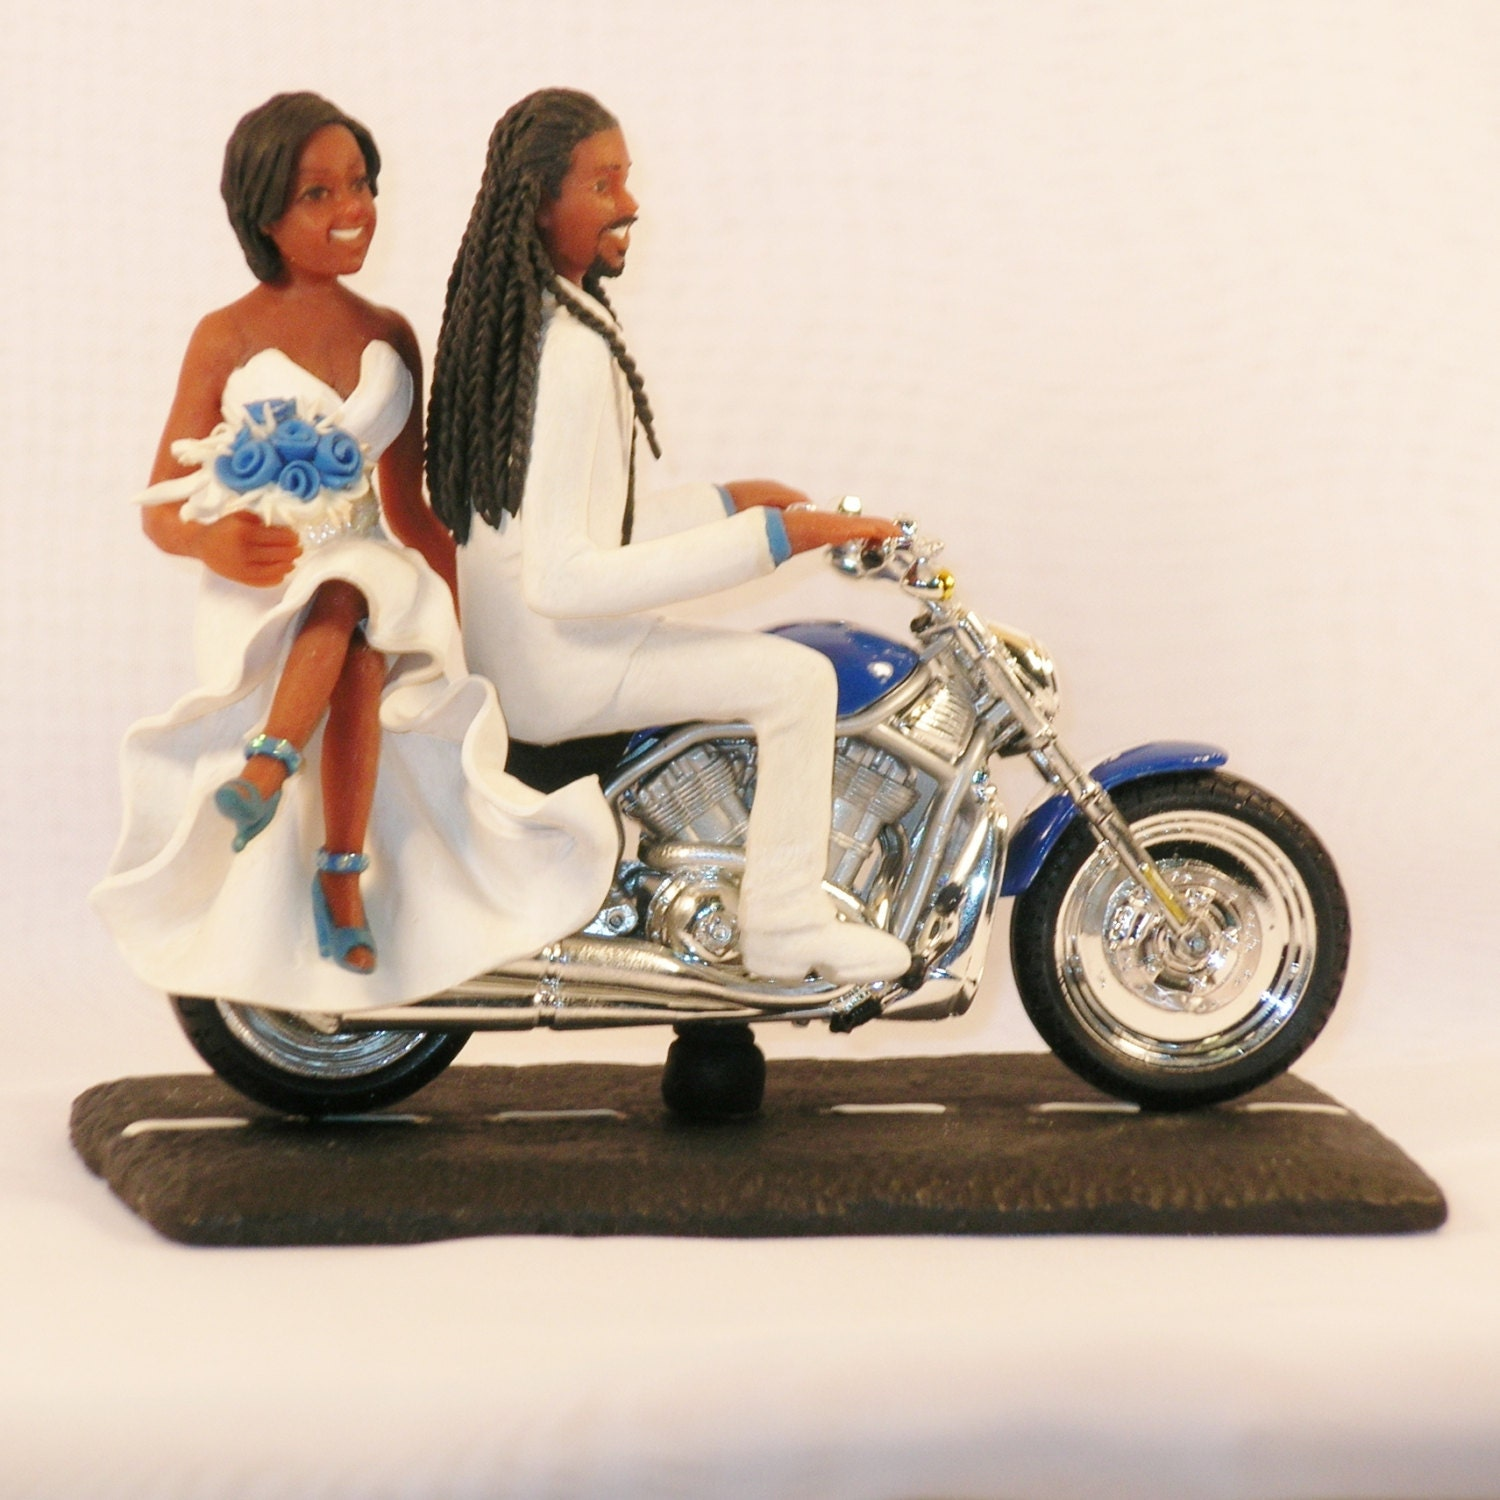 Motorbike Cake 9 Homemade Birthday Cakes Hawaii On Pinterest